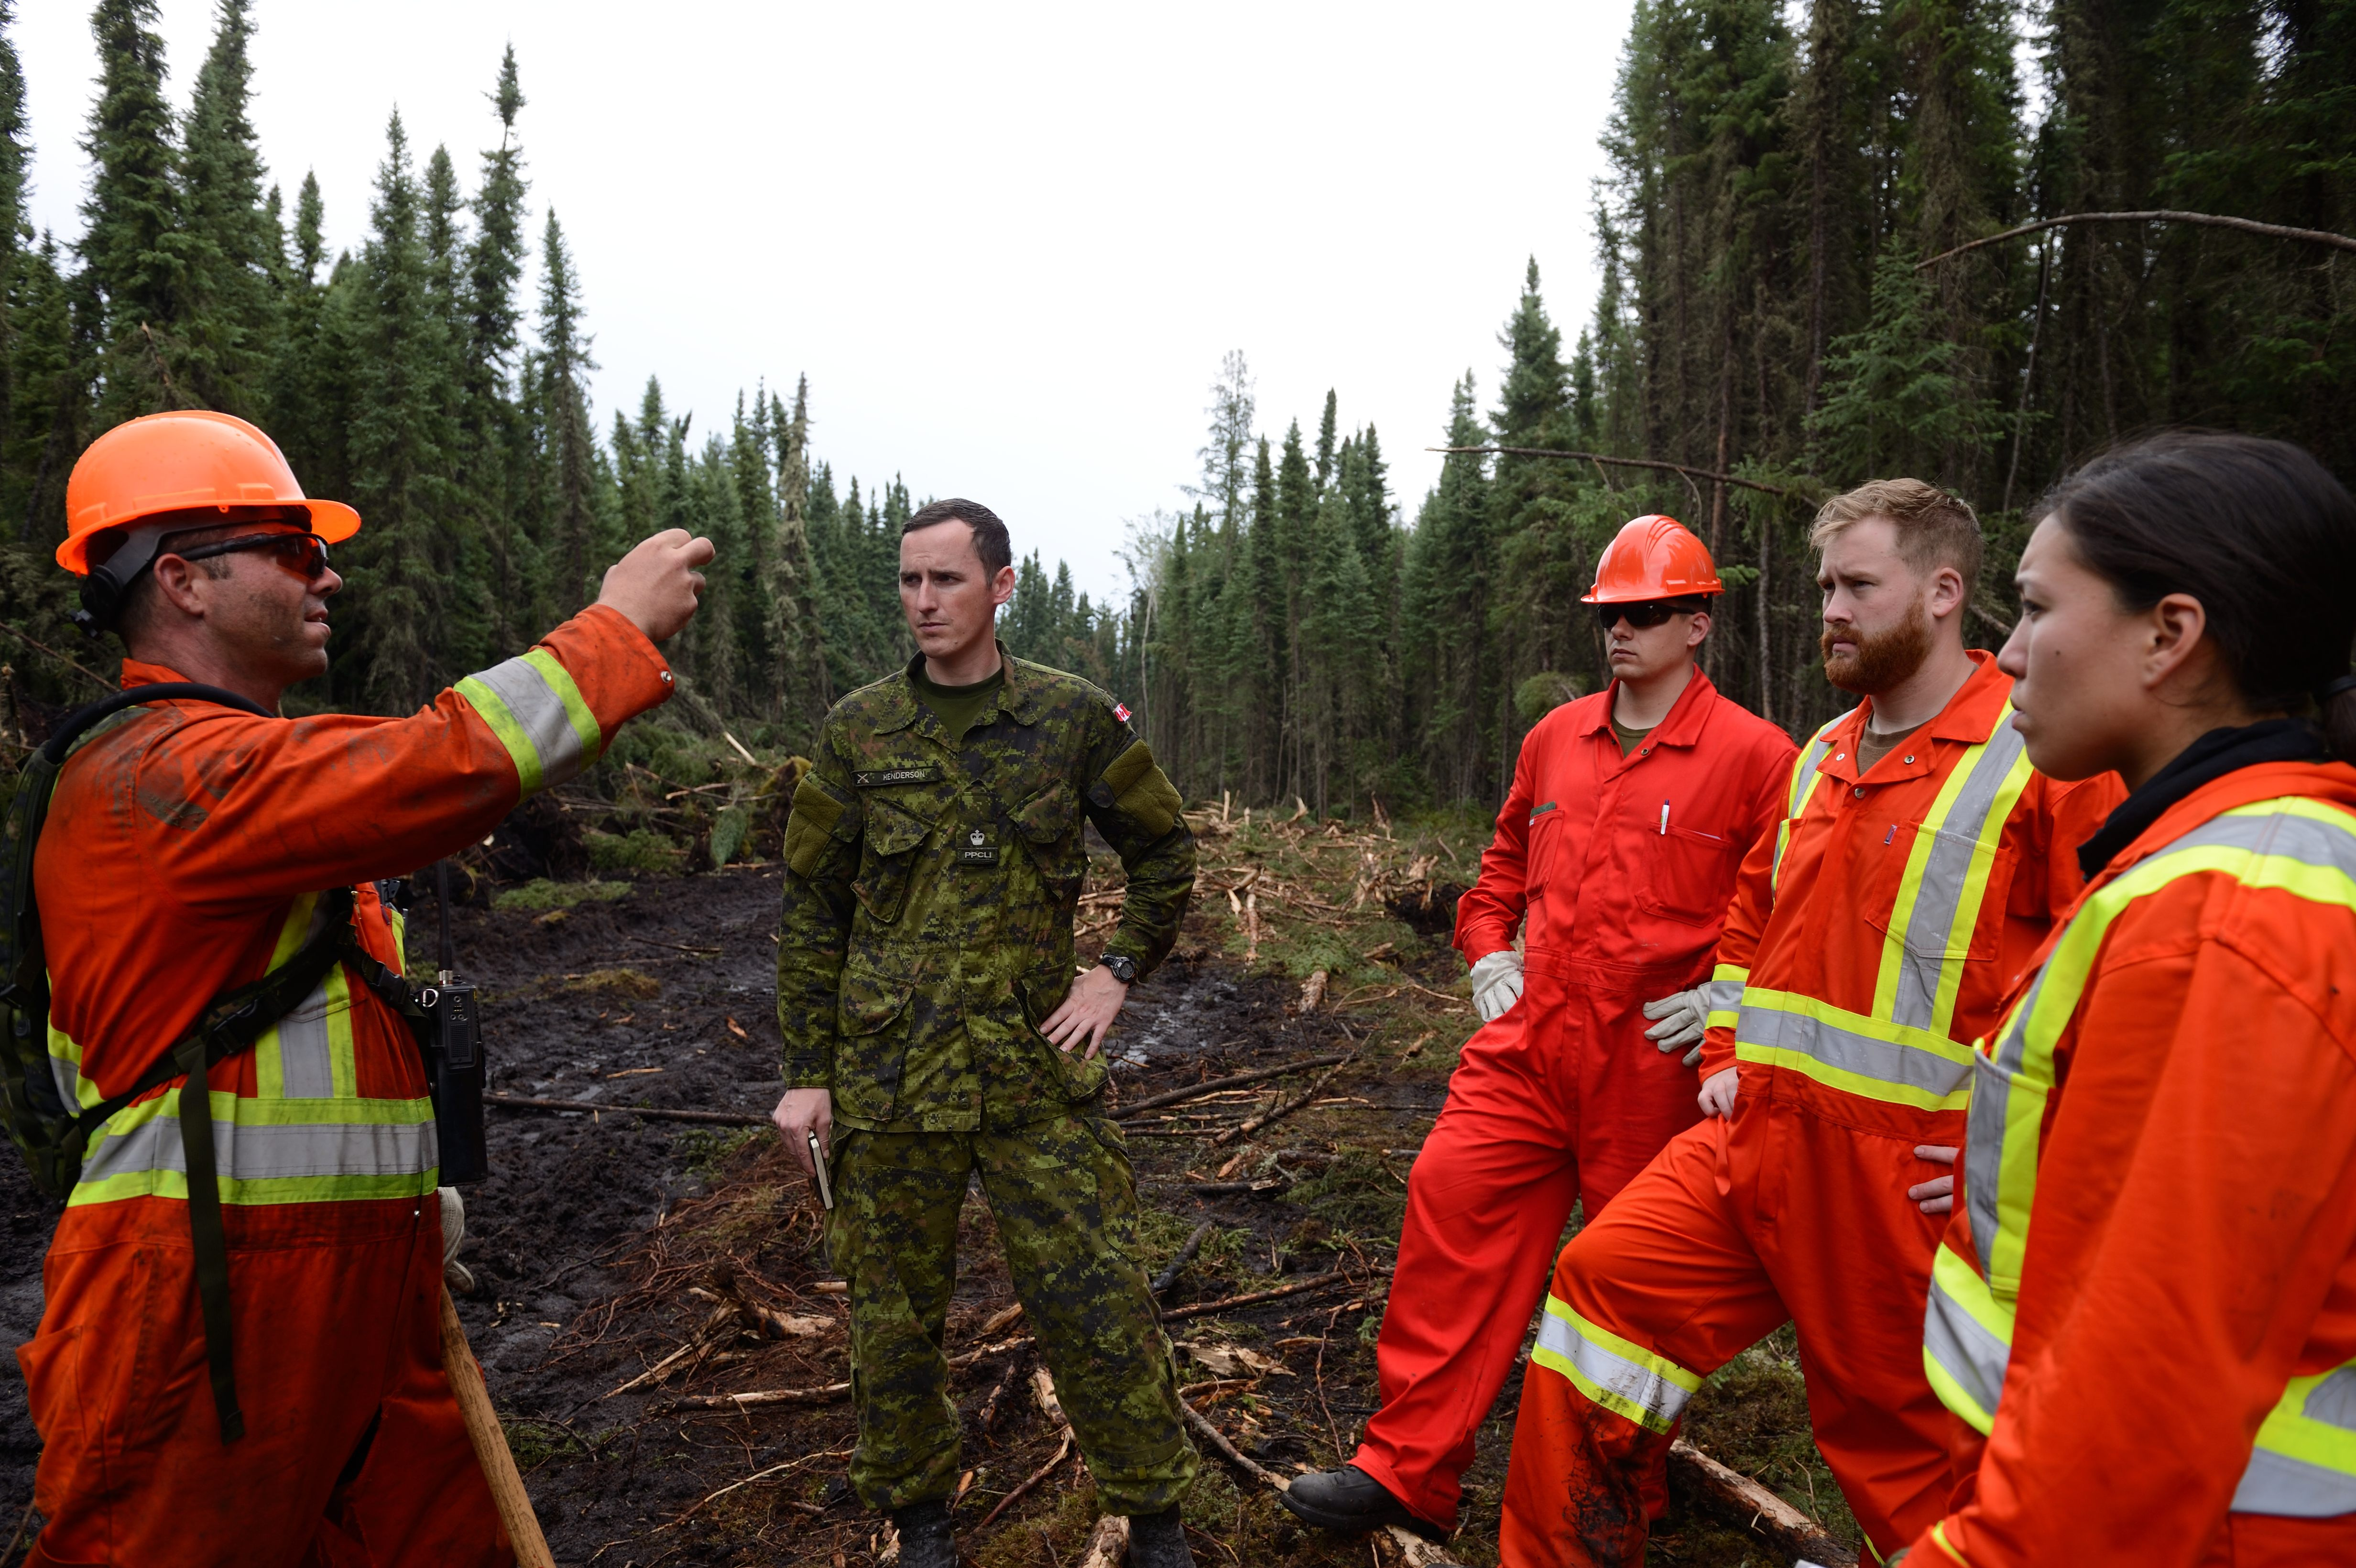 Members of 1 PPCLI, A Company, Immediate Response Unit (West) help fight fires near La Ronge, Saskatchewan during Operation LENTUS 15-02 on July 13, 2015. Photo by: MCpl Mélanie Ferguson, Canadian Army Public Affairs. ©2015 DND-MDN Canada.